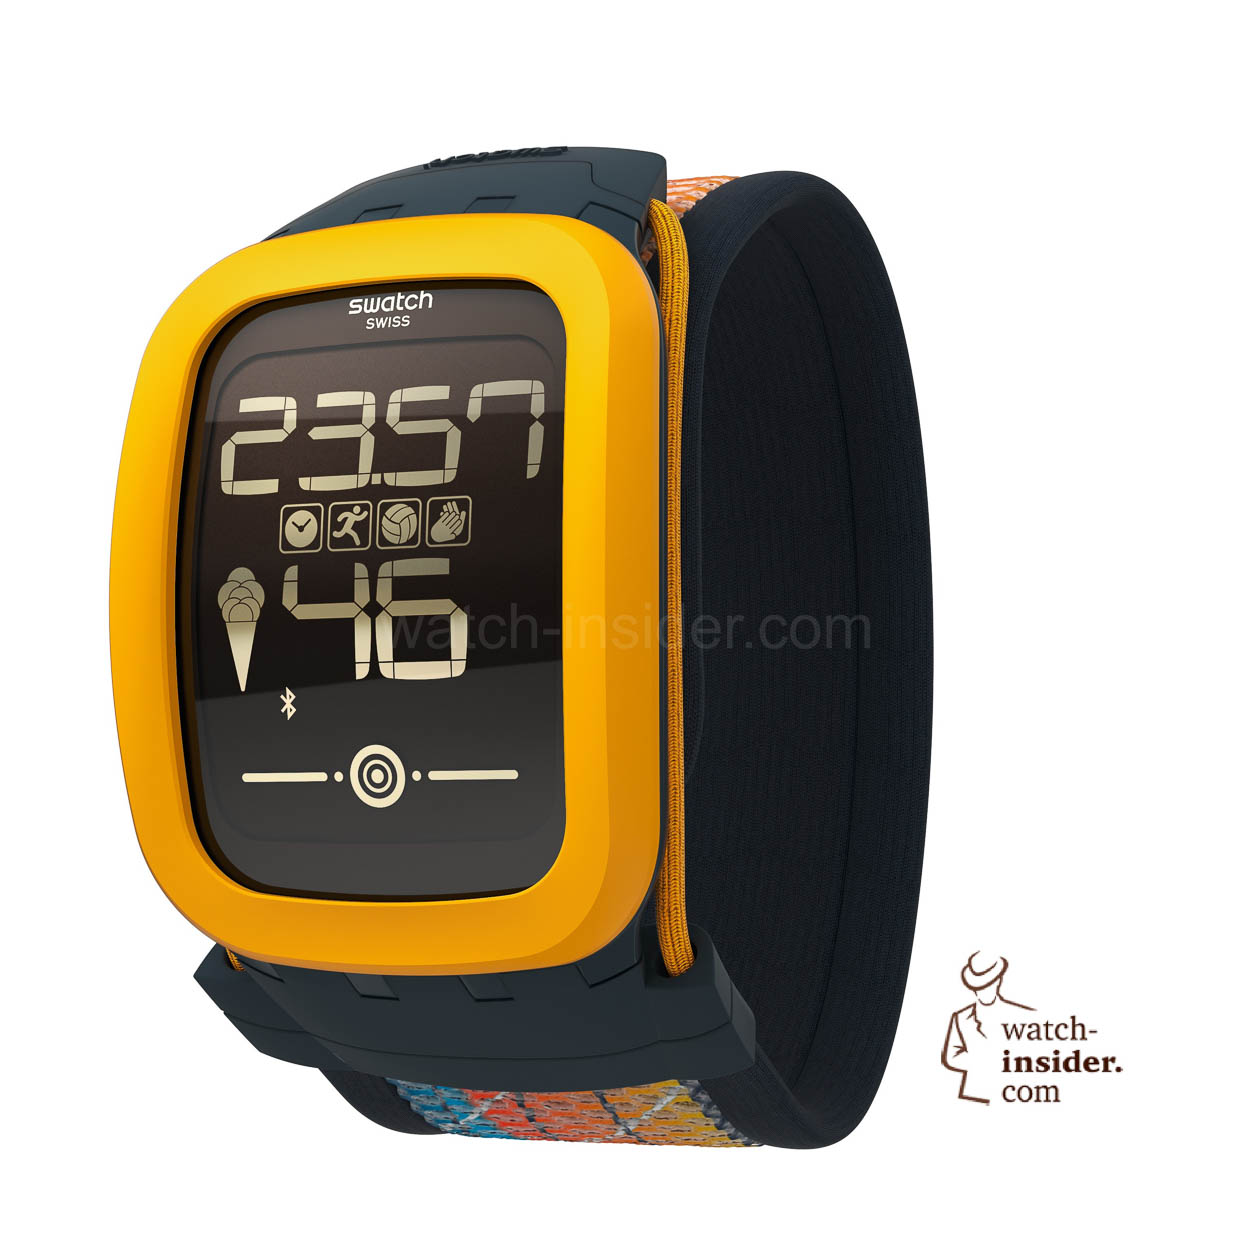 the bitrh of the swatch Birth of the swatch case solution, in 1993, swatch is the best selling clock in history traces the history of the watch industry until the early 1980s, when the swatch was introduced descr.